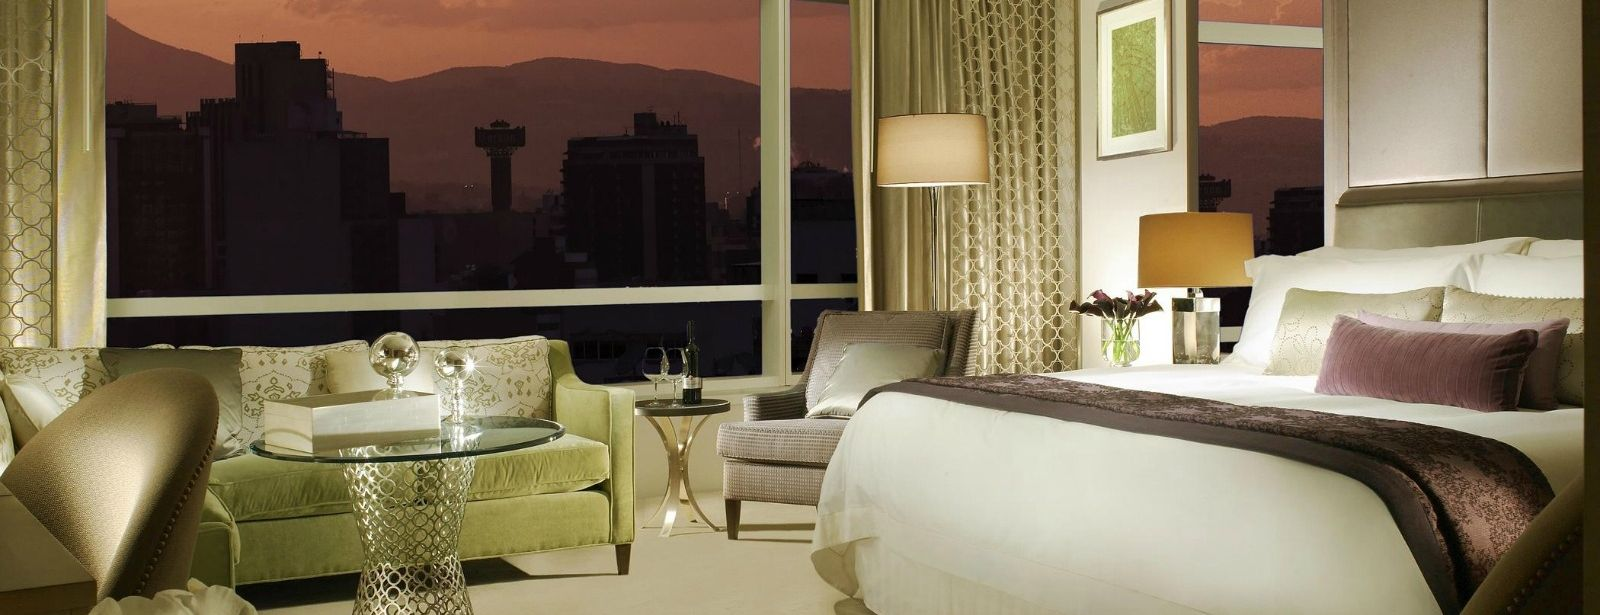 Deluxe Room - The St. Regis Mexico City